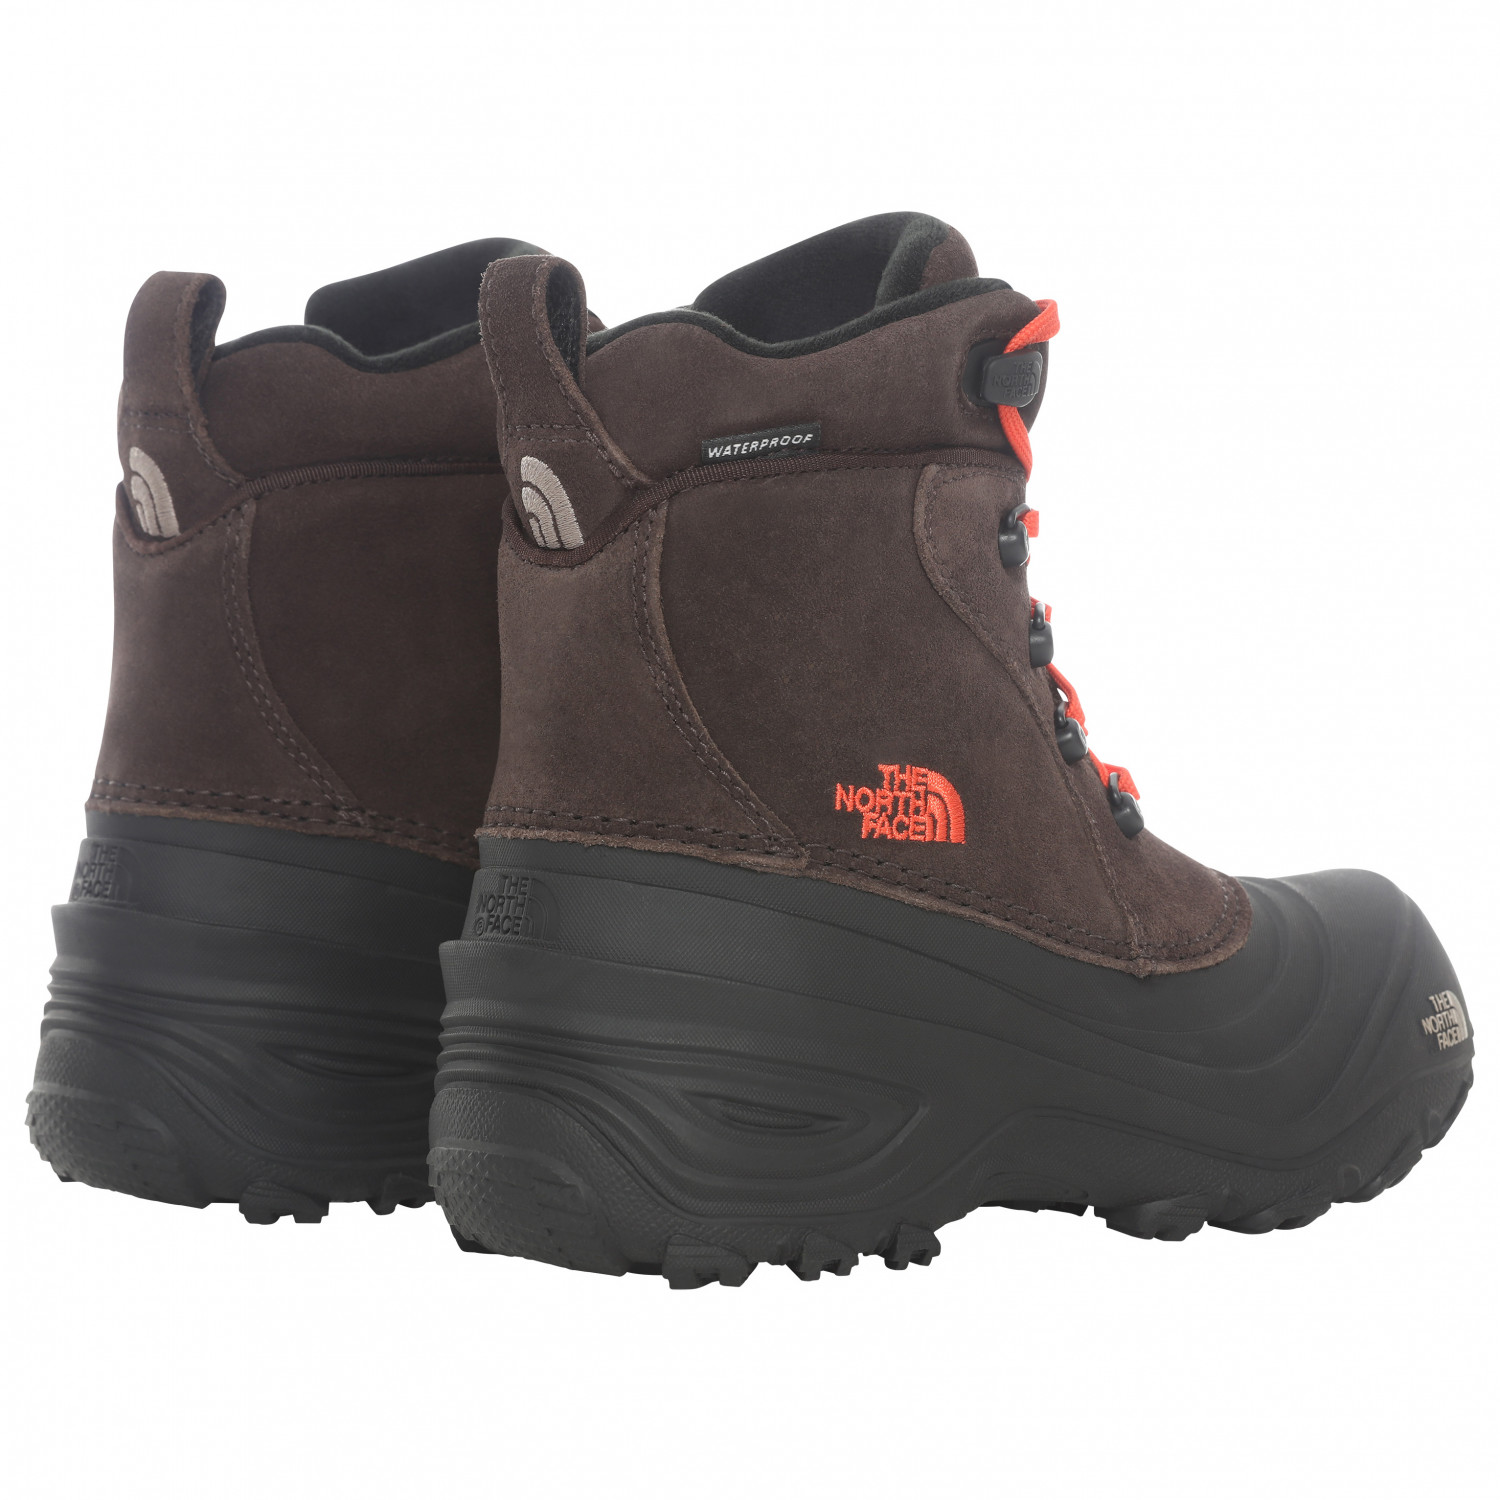 20e303df2 The North Face - Youth Chilkat Lace II - Winter boots - TNF Black / Zinc  Grey | 10K (US)